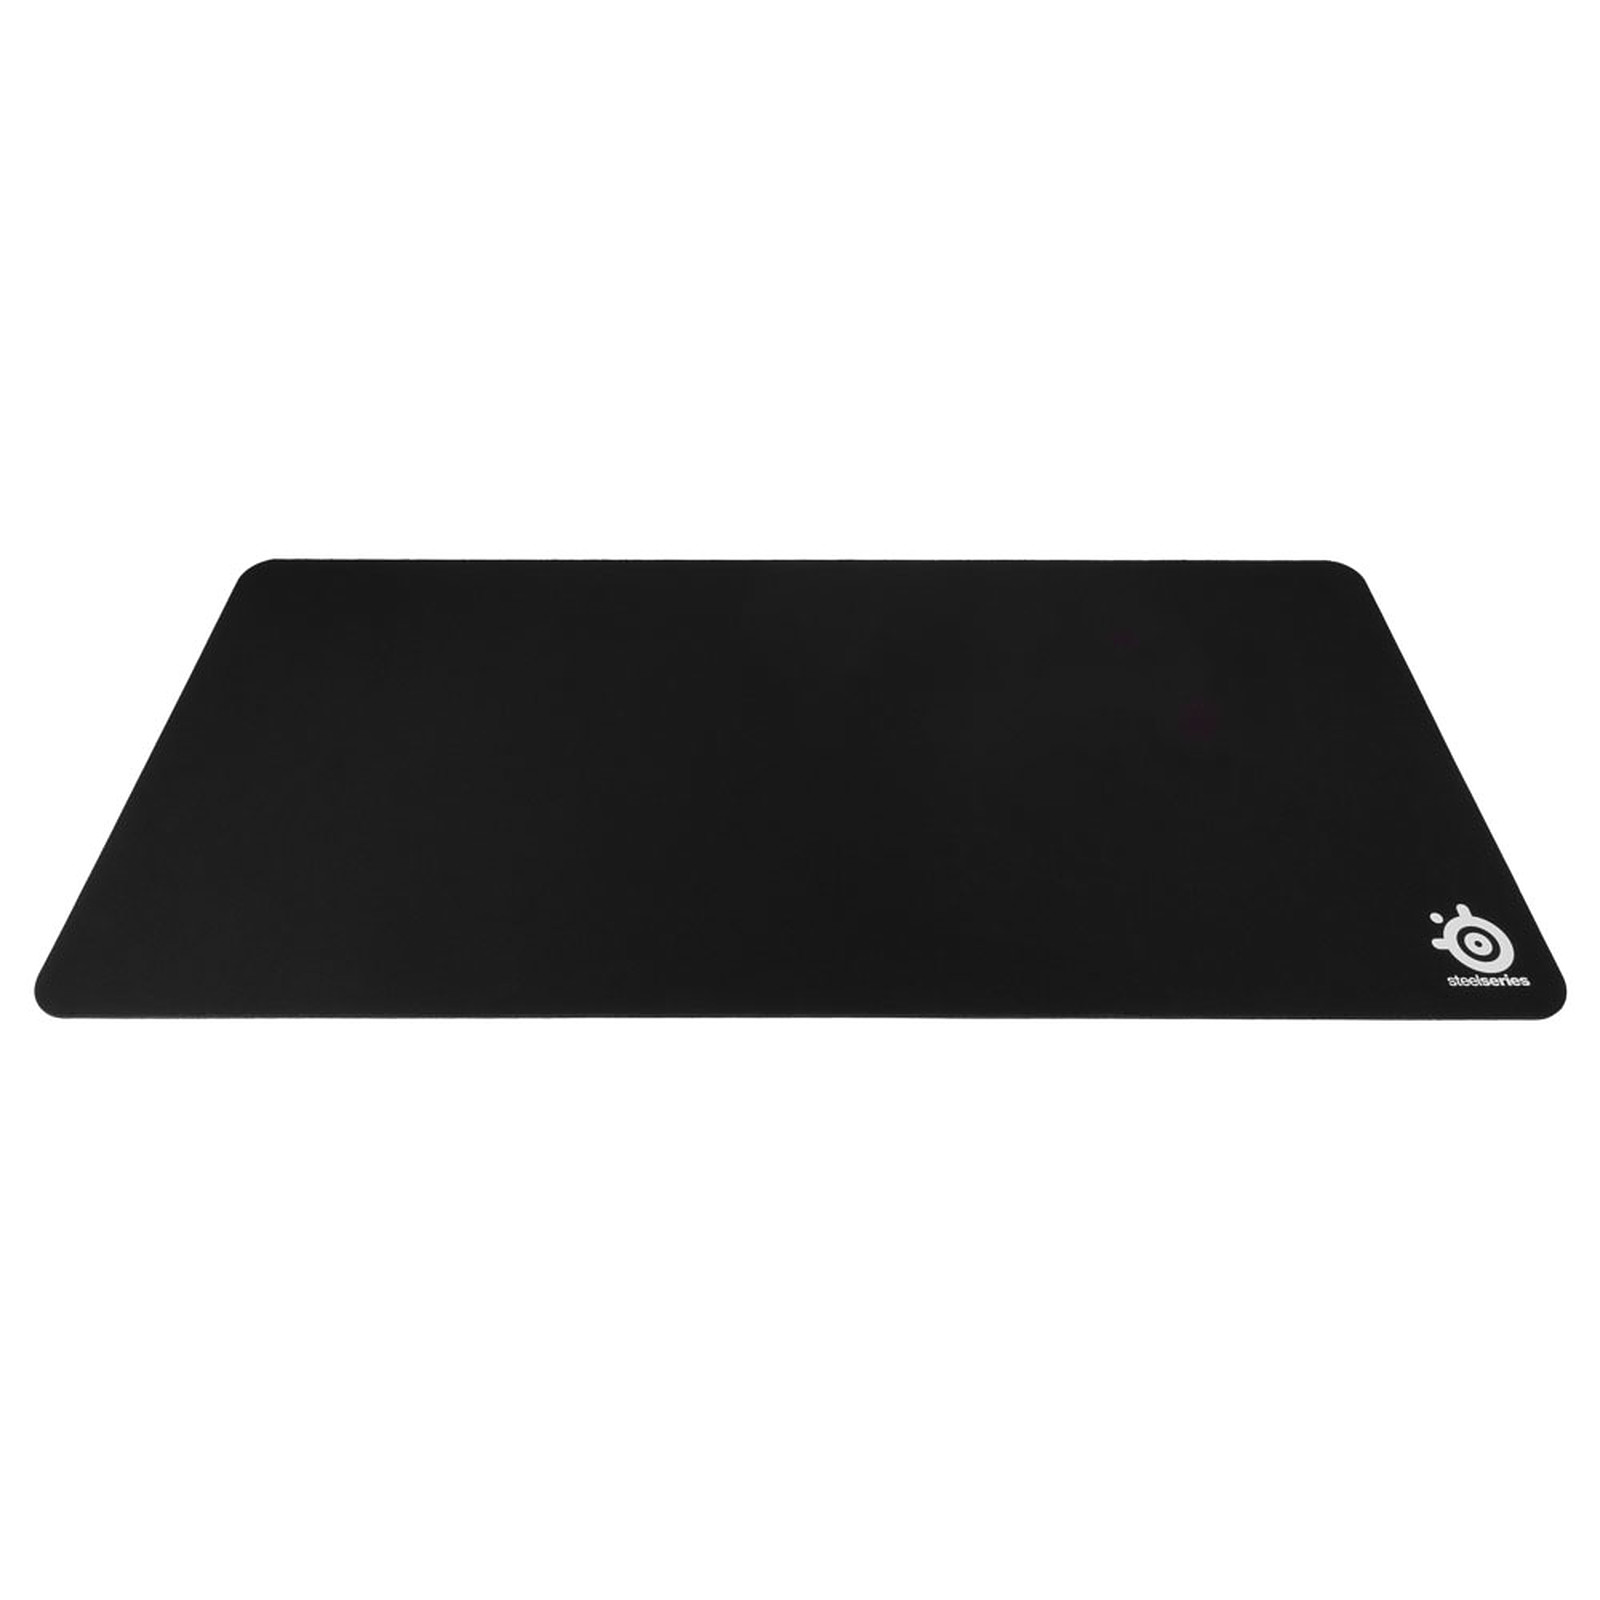 Steelseries Qck Xxl Tapis De Souris Steelseries Sur Ldlccom